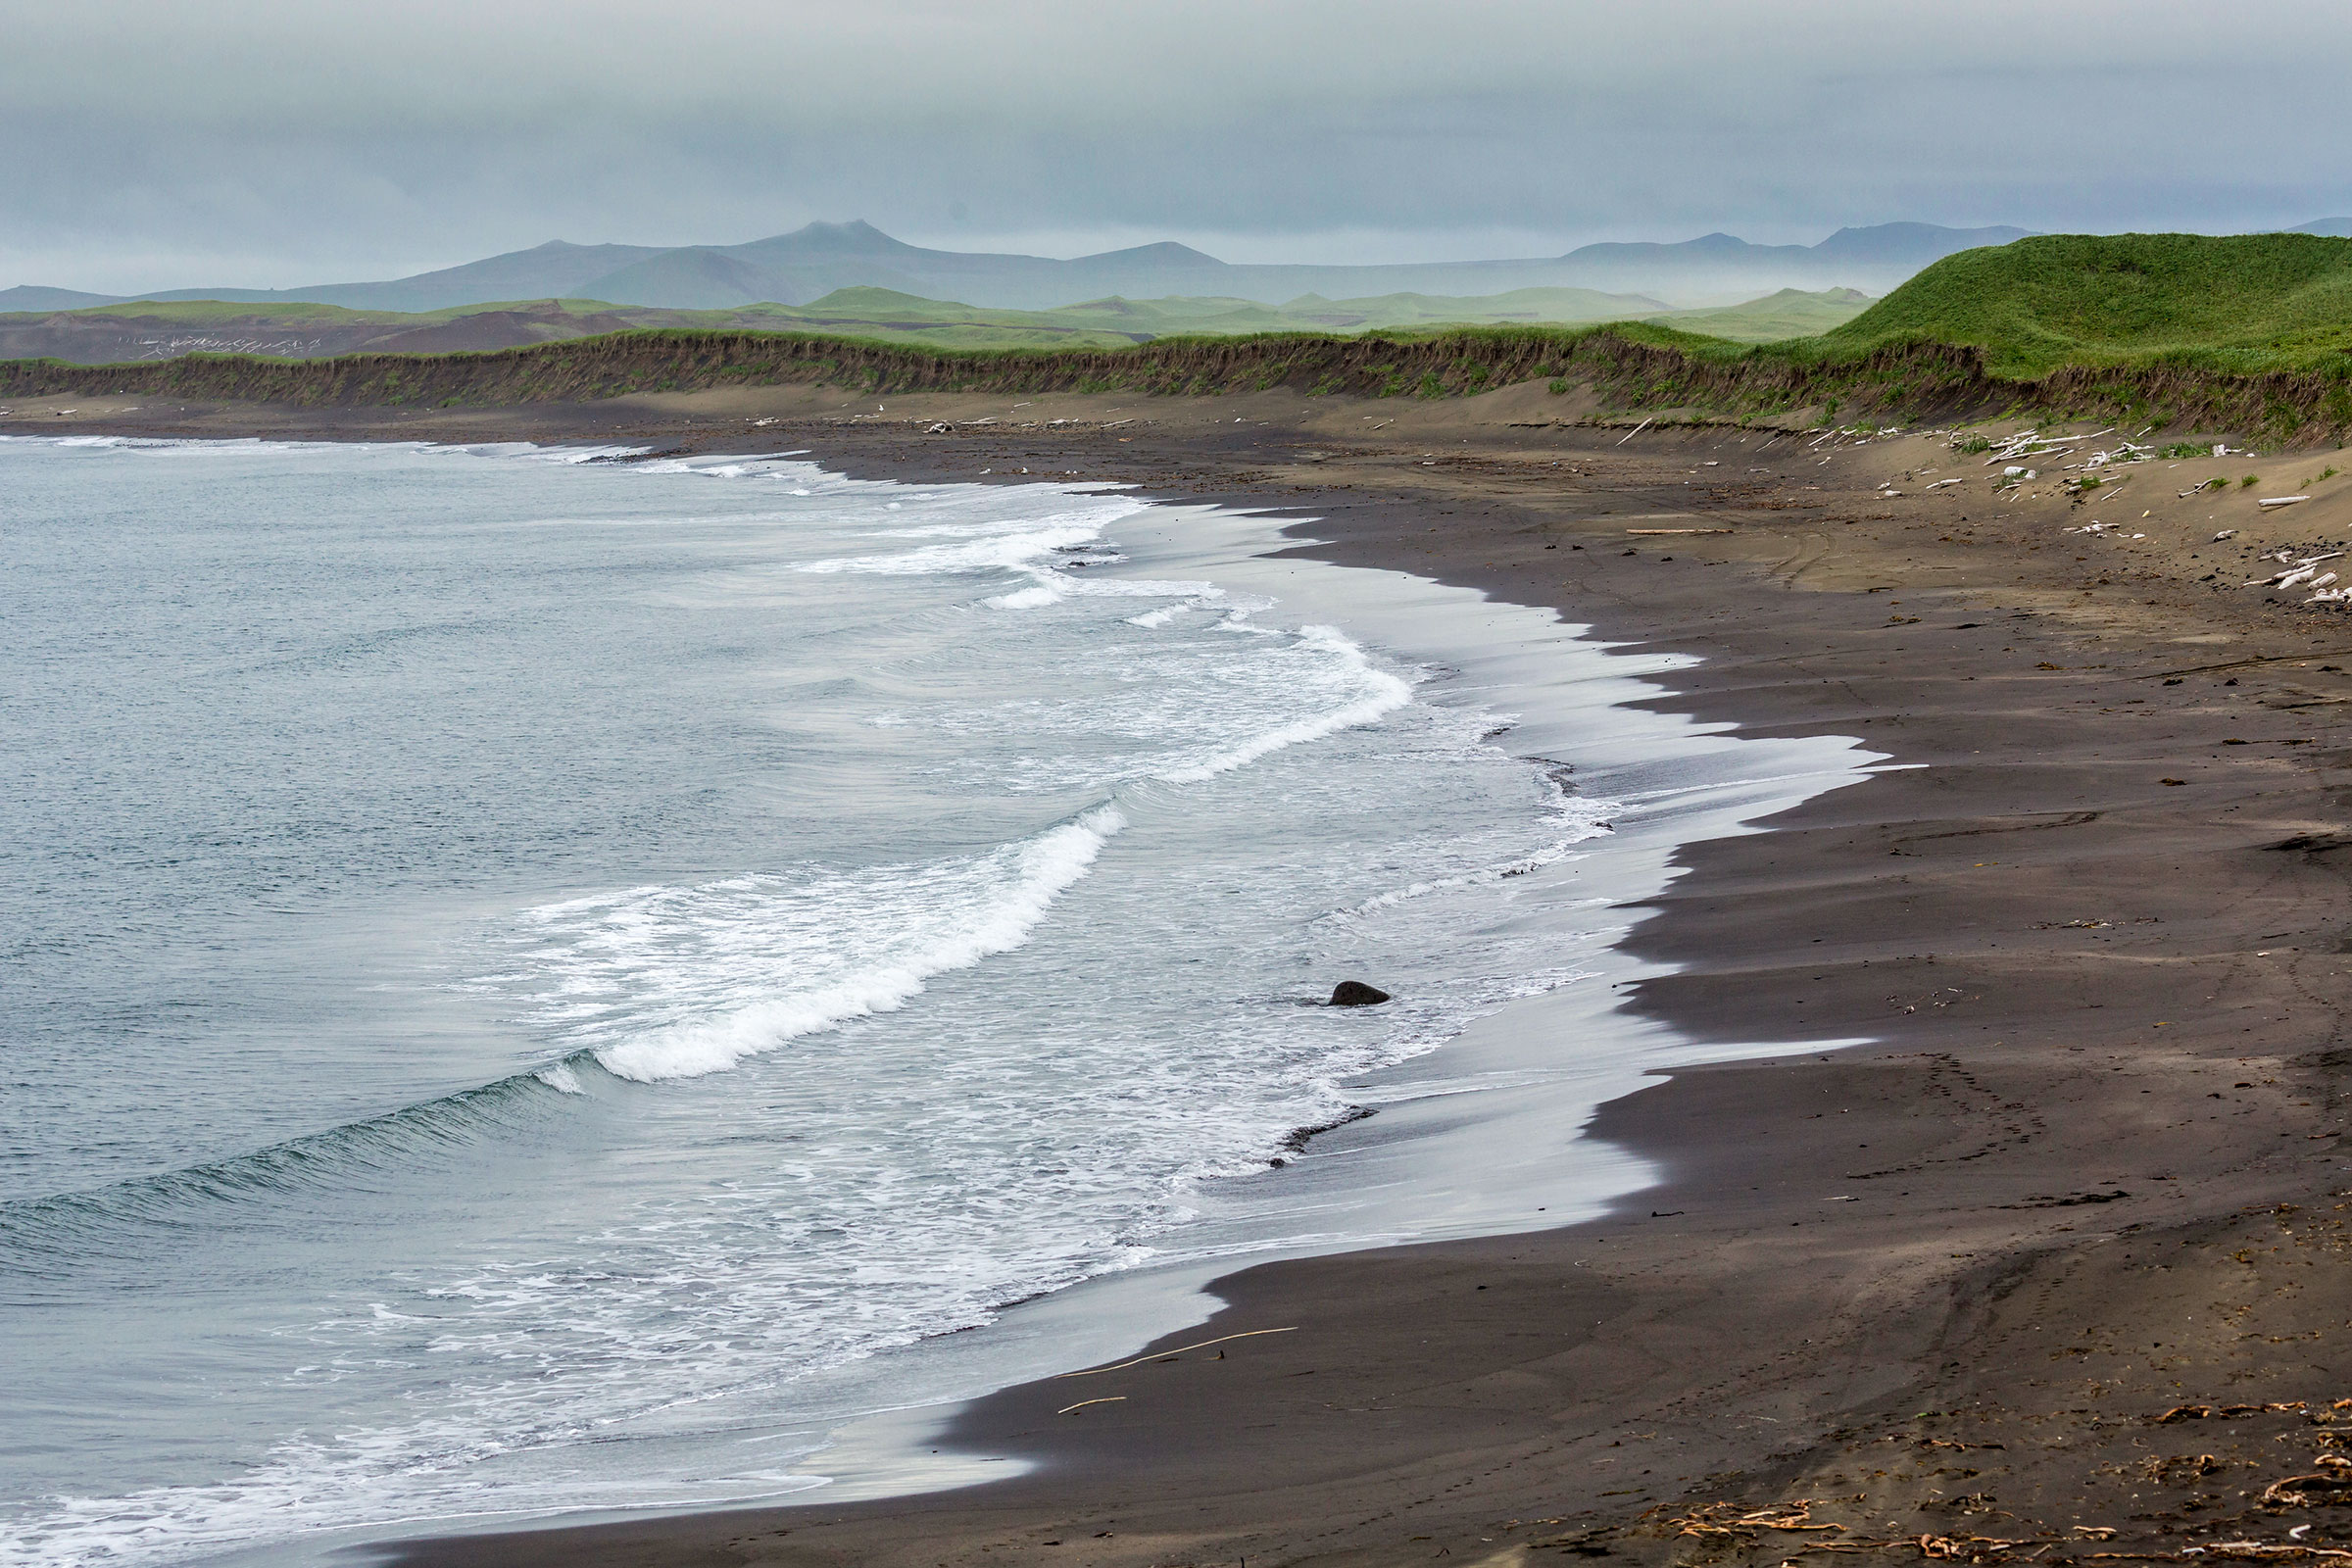 Bering Sea along the coastline of St. Paul Island, Alaska. Photo: Ray Bulson/Alamy